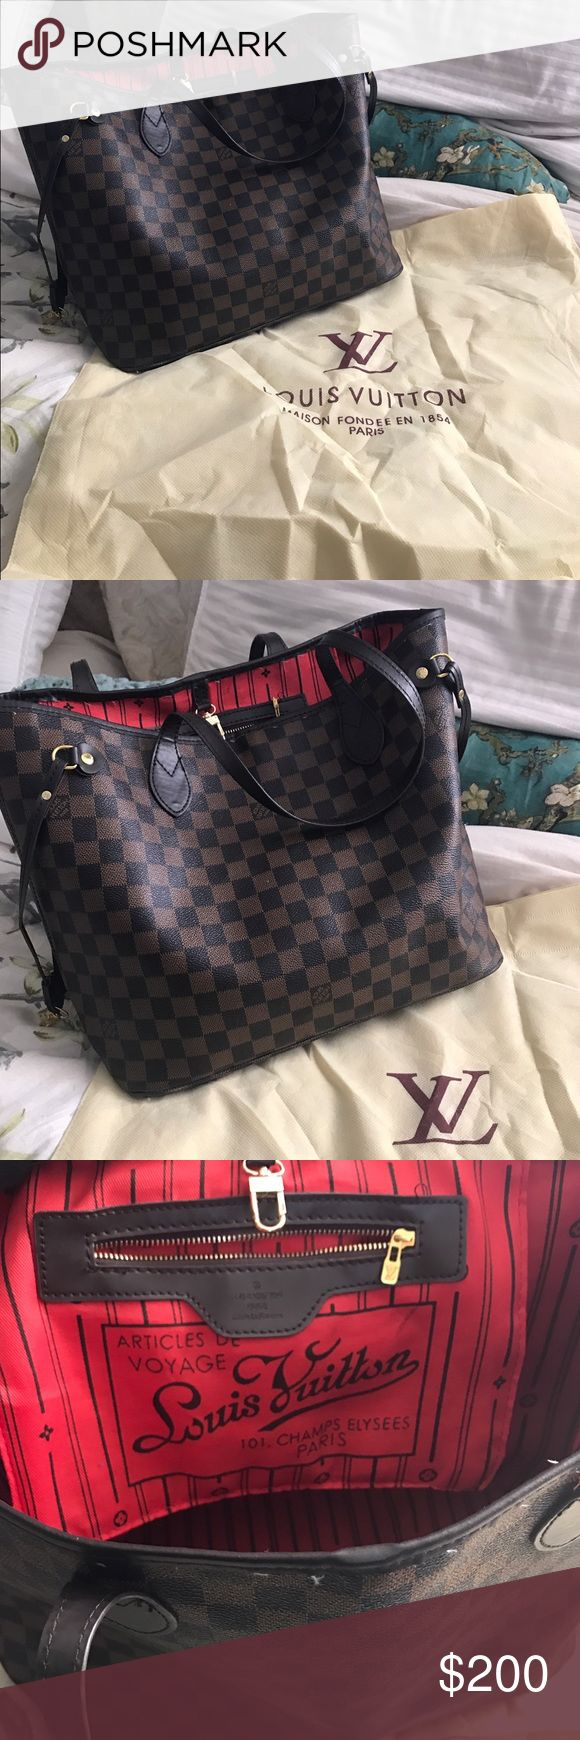 Beautiful LV Brown Purse Medium sized bag used a few times but so cute and good condition. Its beautiful and is so great for everyday use. The price reflects authenticity. Dont ask. ( will trade) great replica Louis Vuitton purse. Bags